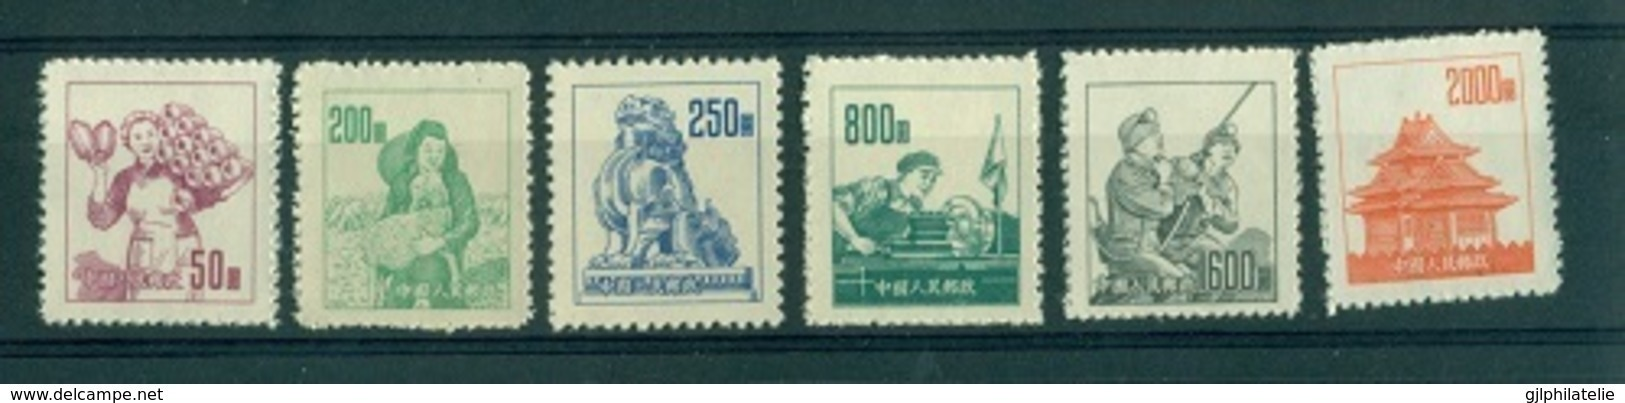 CHINE R006 Métiers - Unused Stamps